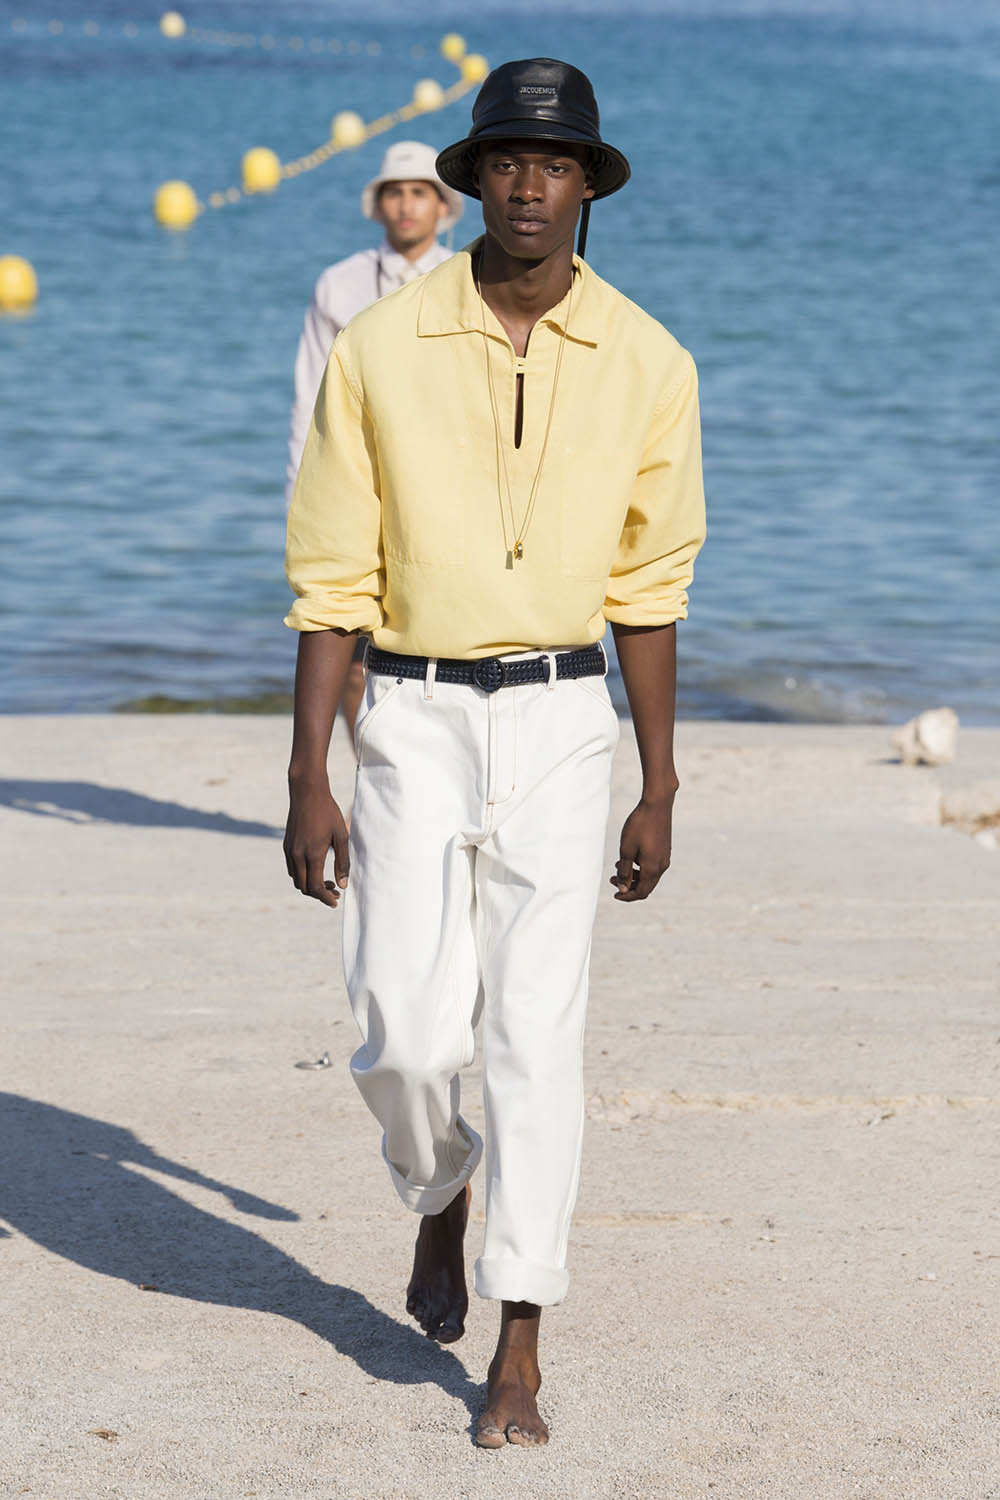 Jacquemus Paris Fashion Week Men's SS19 - Sagaboi - Look 4